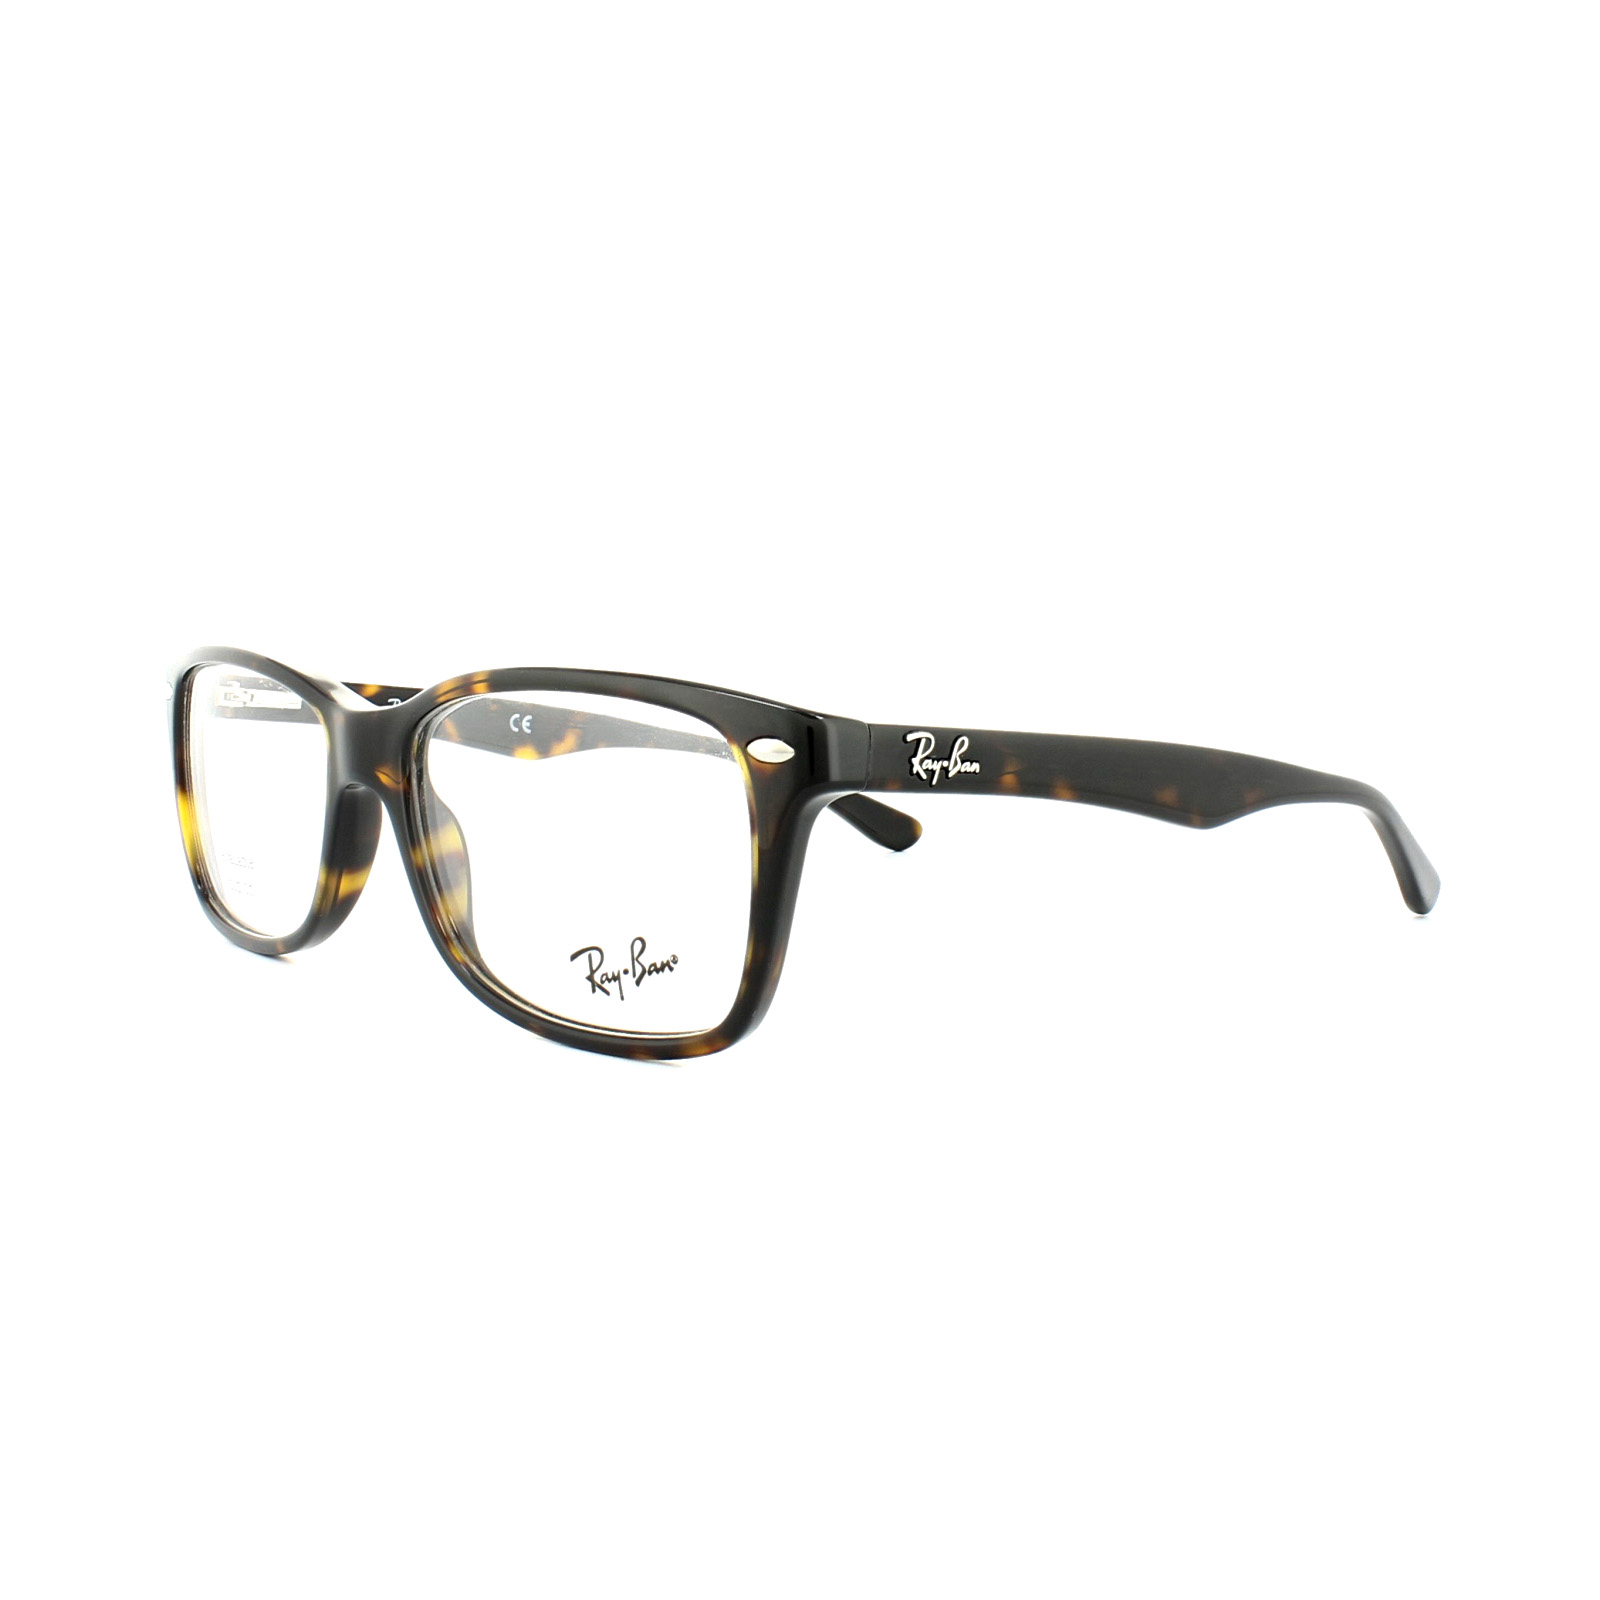 95a19931a0 Cheap Ray-Ban 5228 Glasses - Discounted Sunglasses